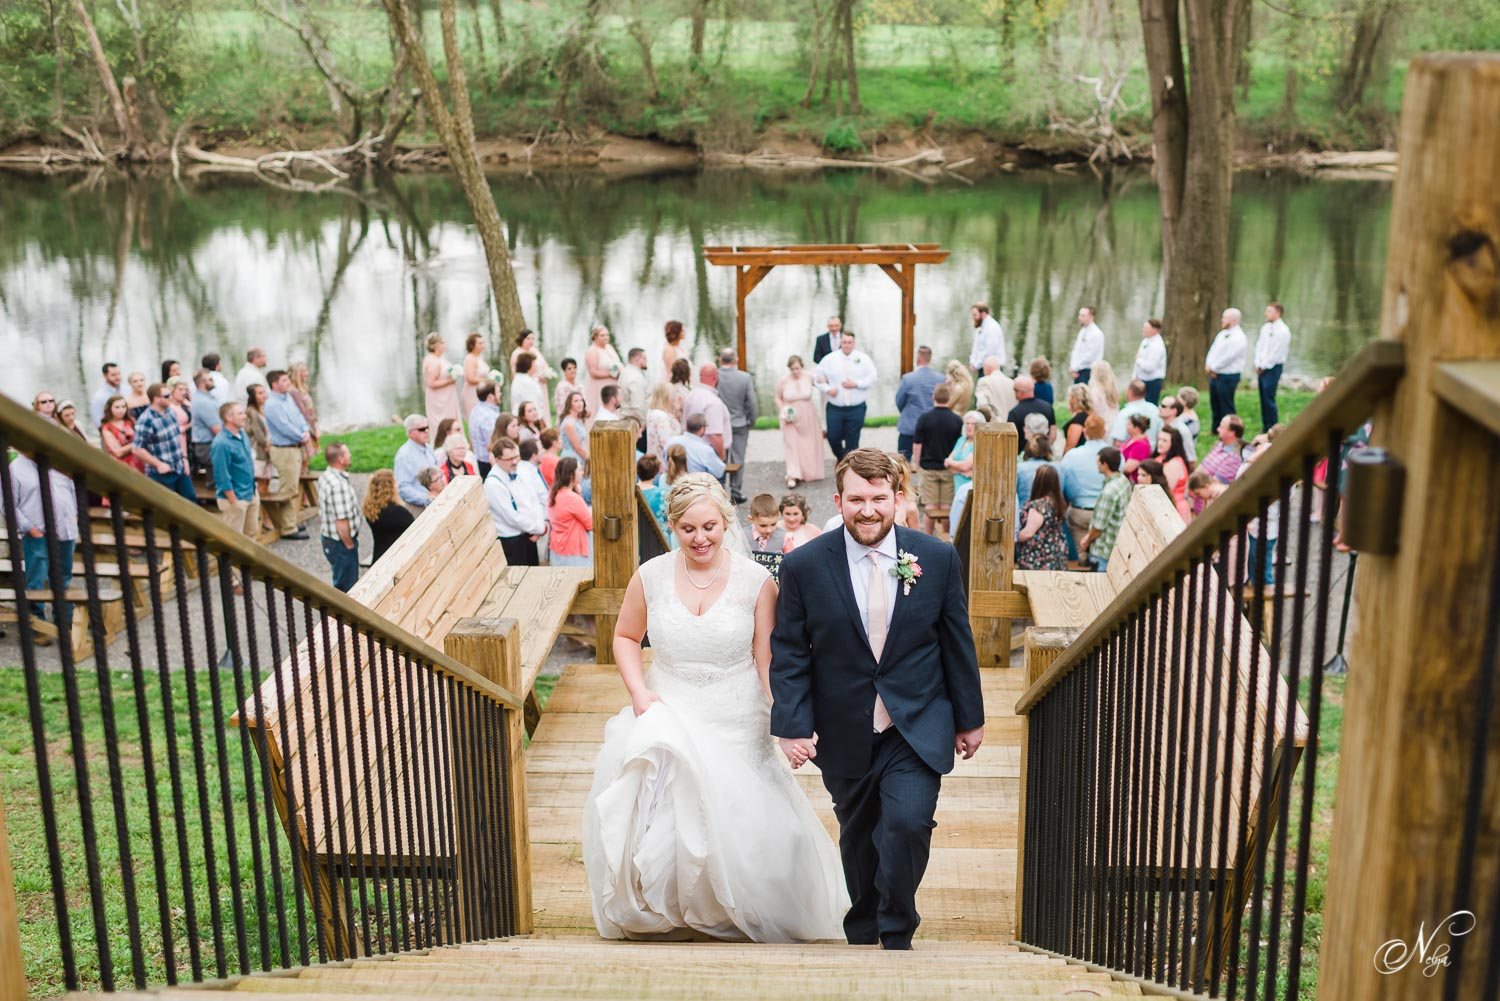 newly married couple walking up stairs at Hiwassee River Weddings venue